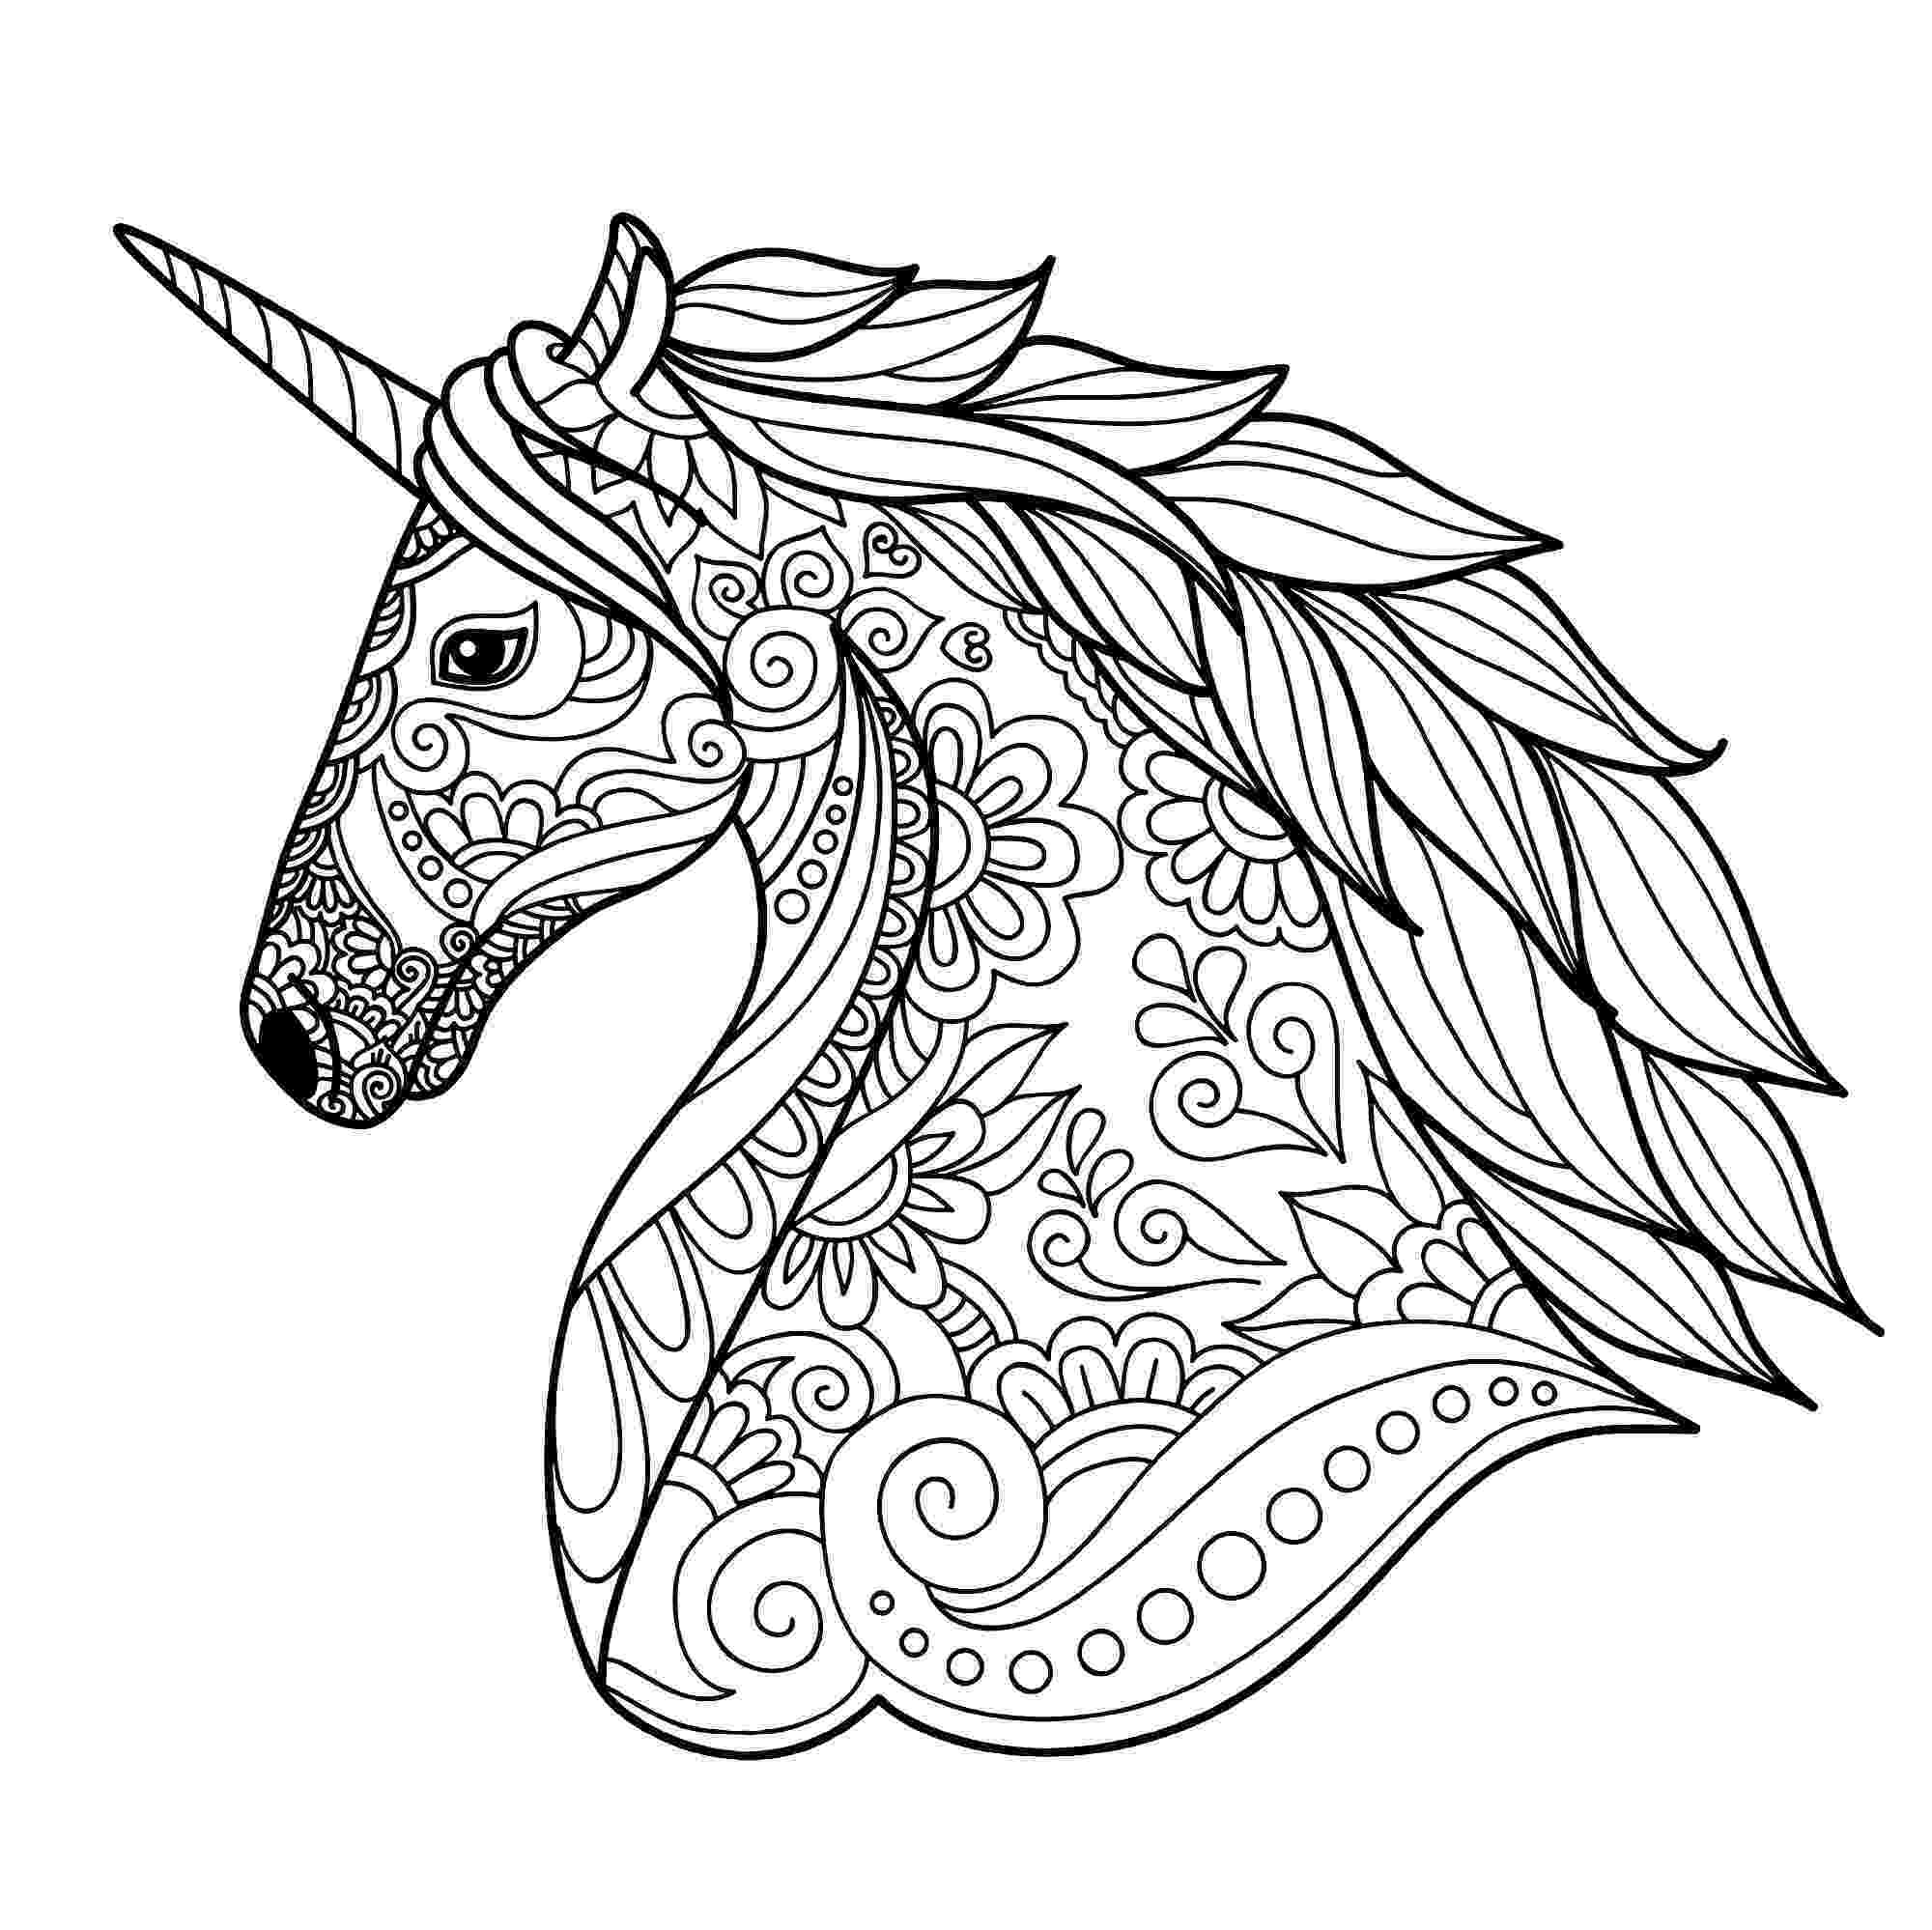 unicorn coloring pages for adults 45 best lineart unicorns images on pinterest unicorns adults unicorn coloring pages for